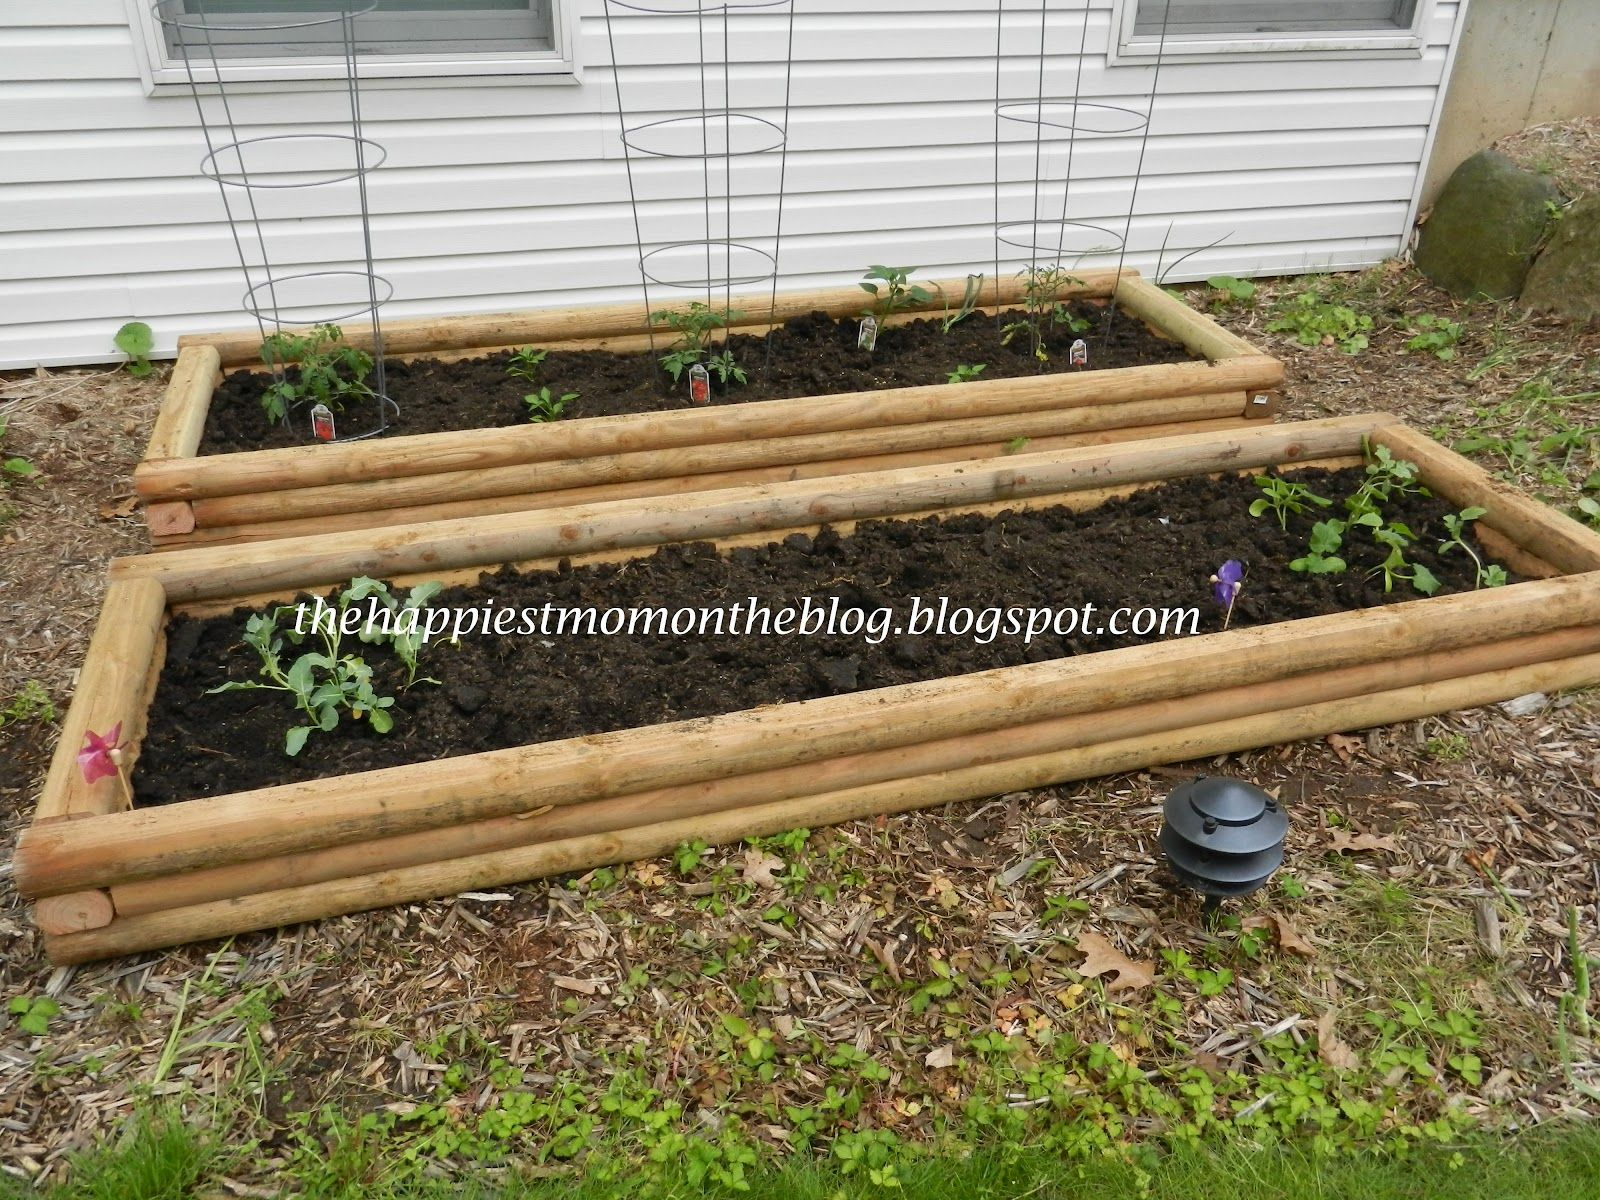 Innovative We Went To Homedepot To Buy Landscape Diy Raised Garden Se Planters Are Easy To Make Out Home Depot Vegetable Garden Box Just A Couple We Built Se Garden Boxes